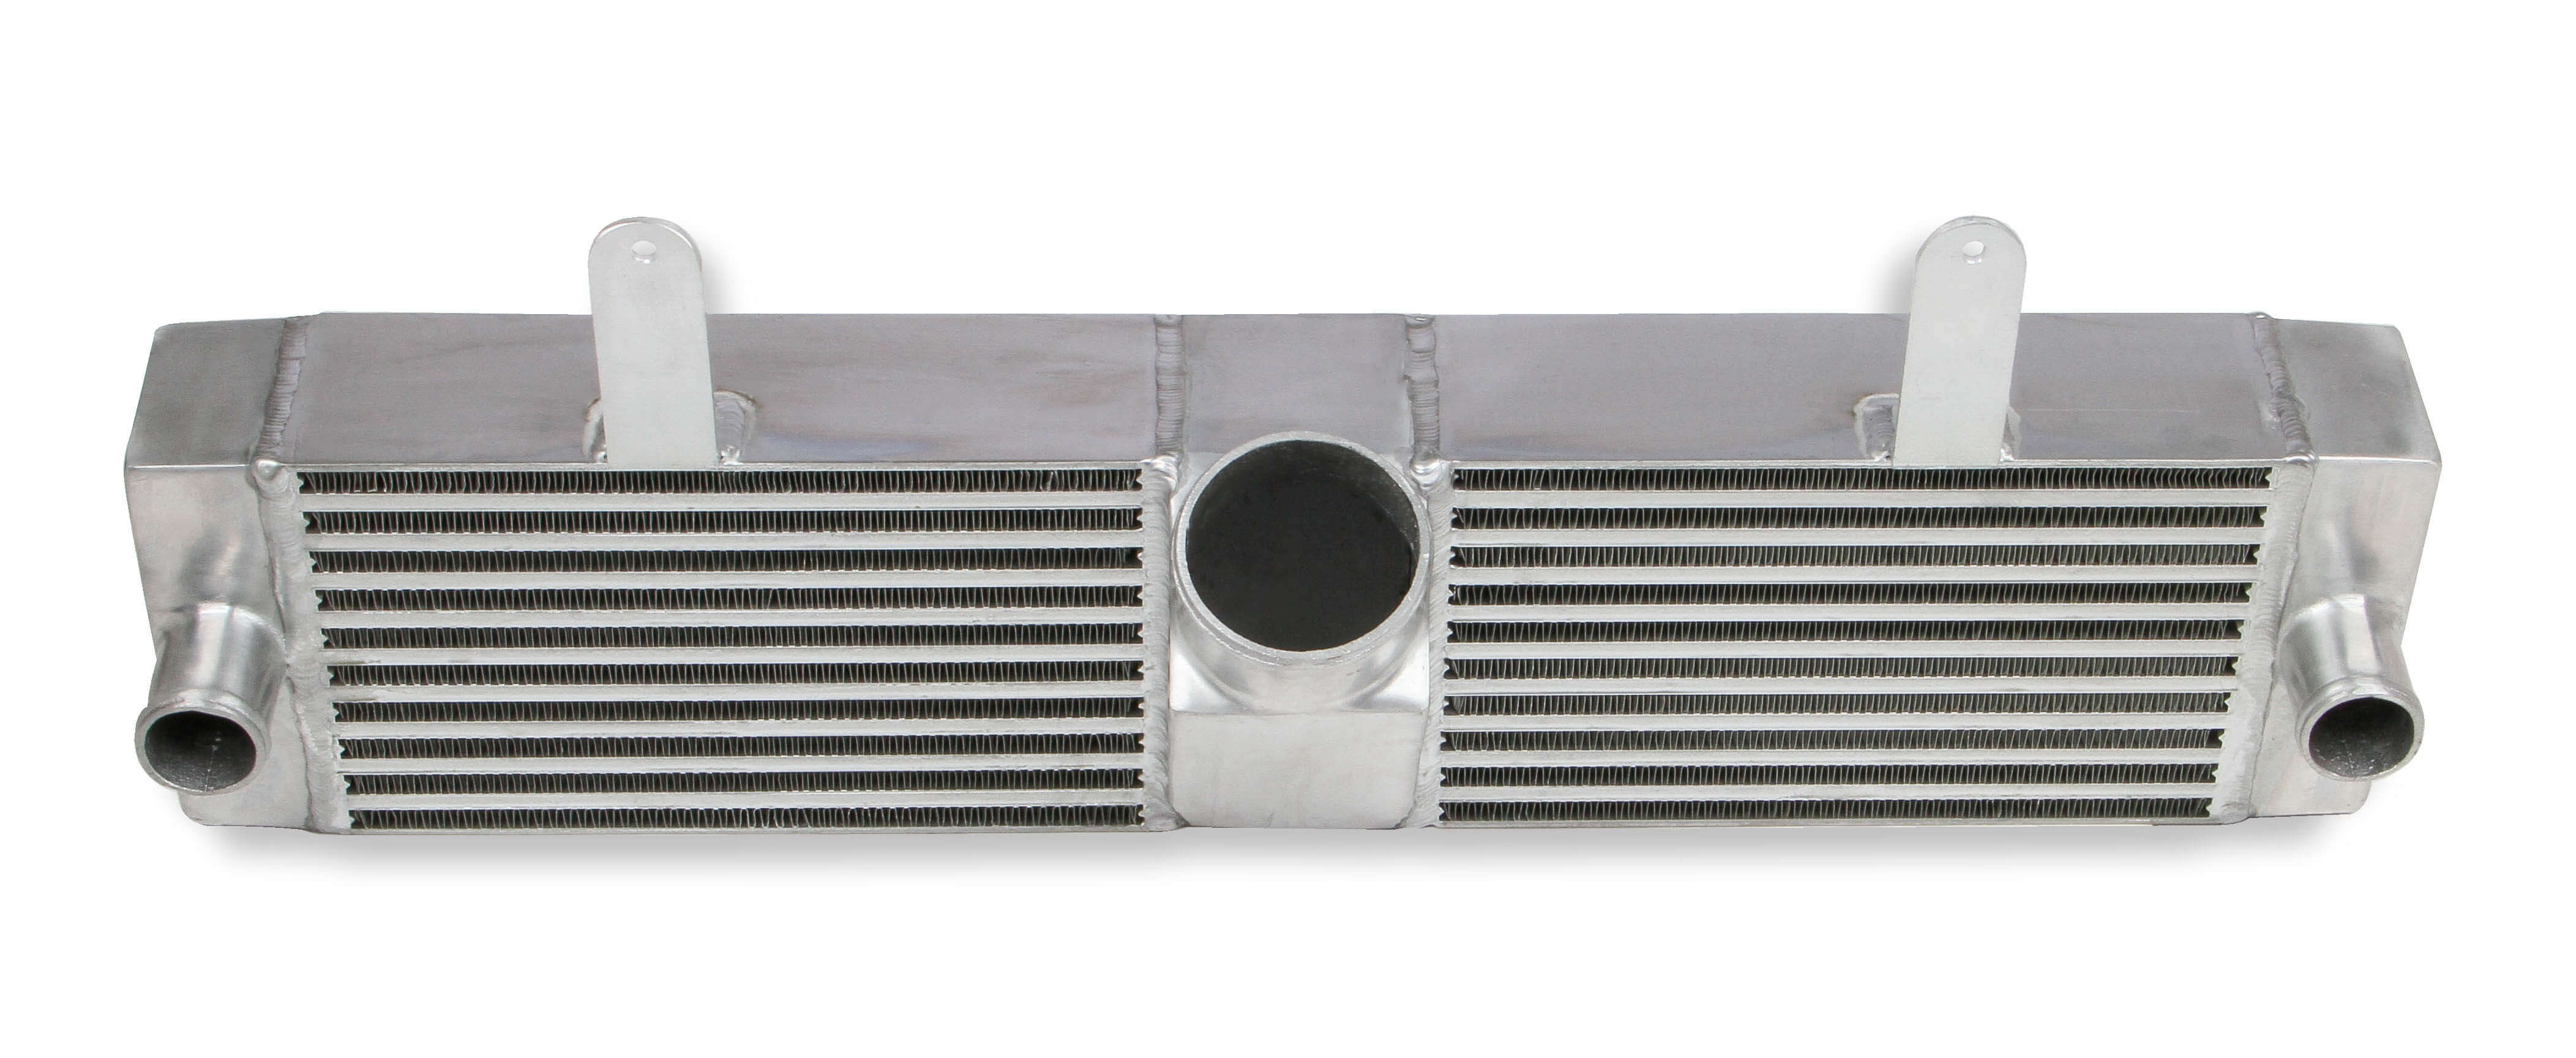 2010-2015 Camaro/2008-2009 Pontiac G8 STS Turbo Direct Fit Intercooler